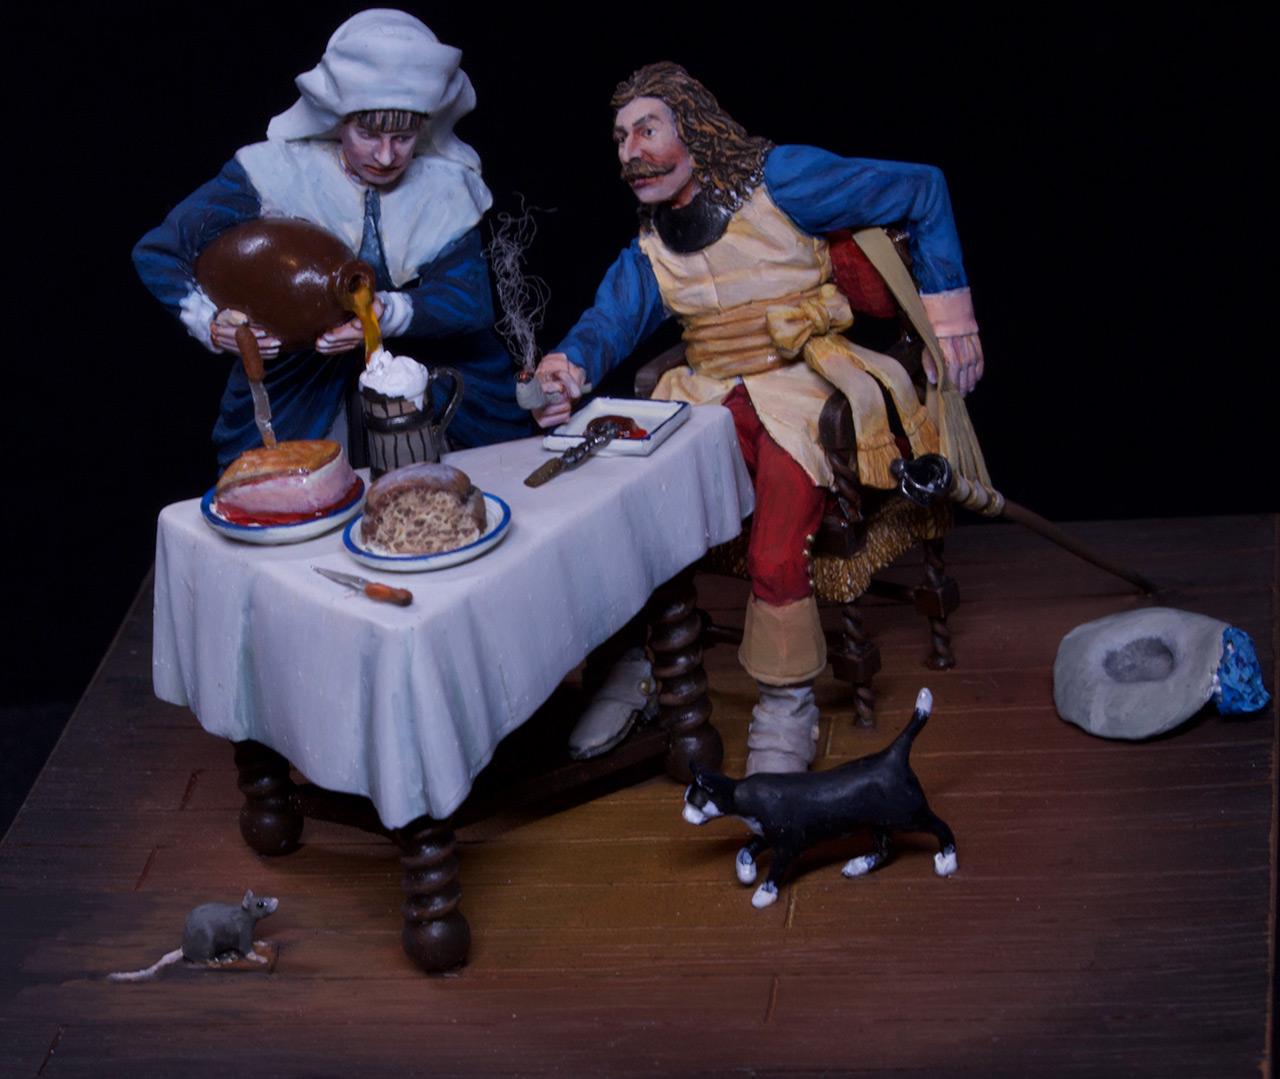 Dioramas and Vignettes: Waitress and cavalier, photo #6